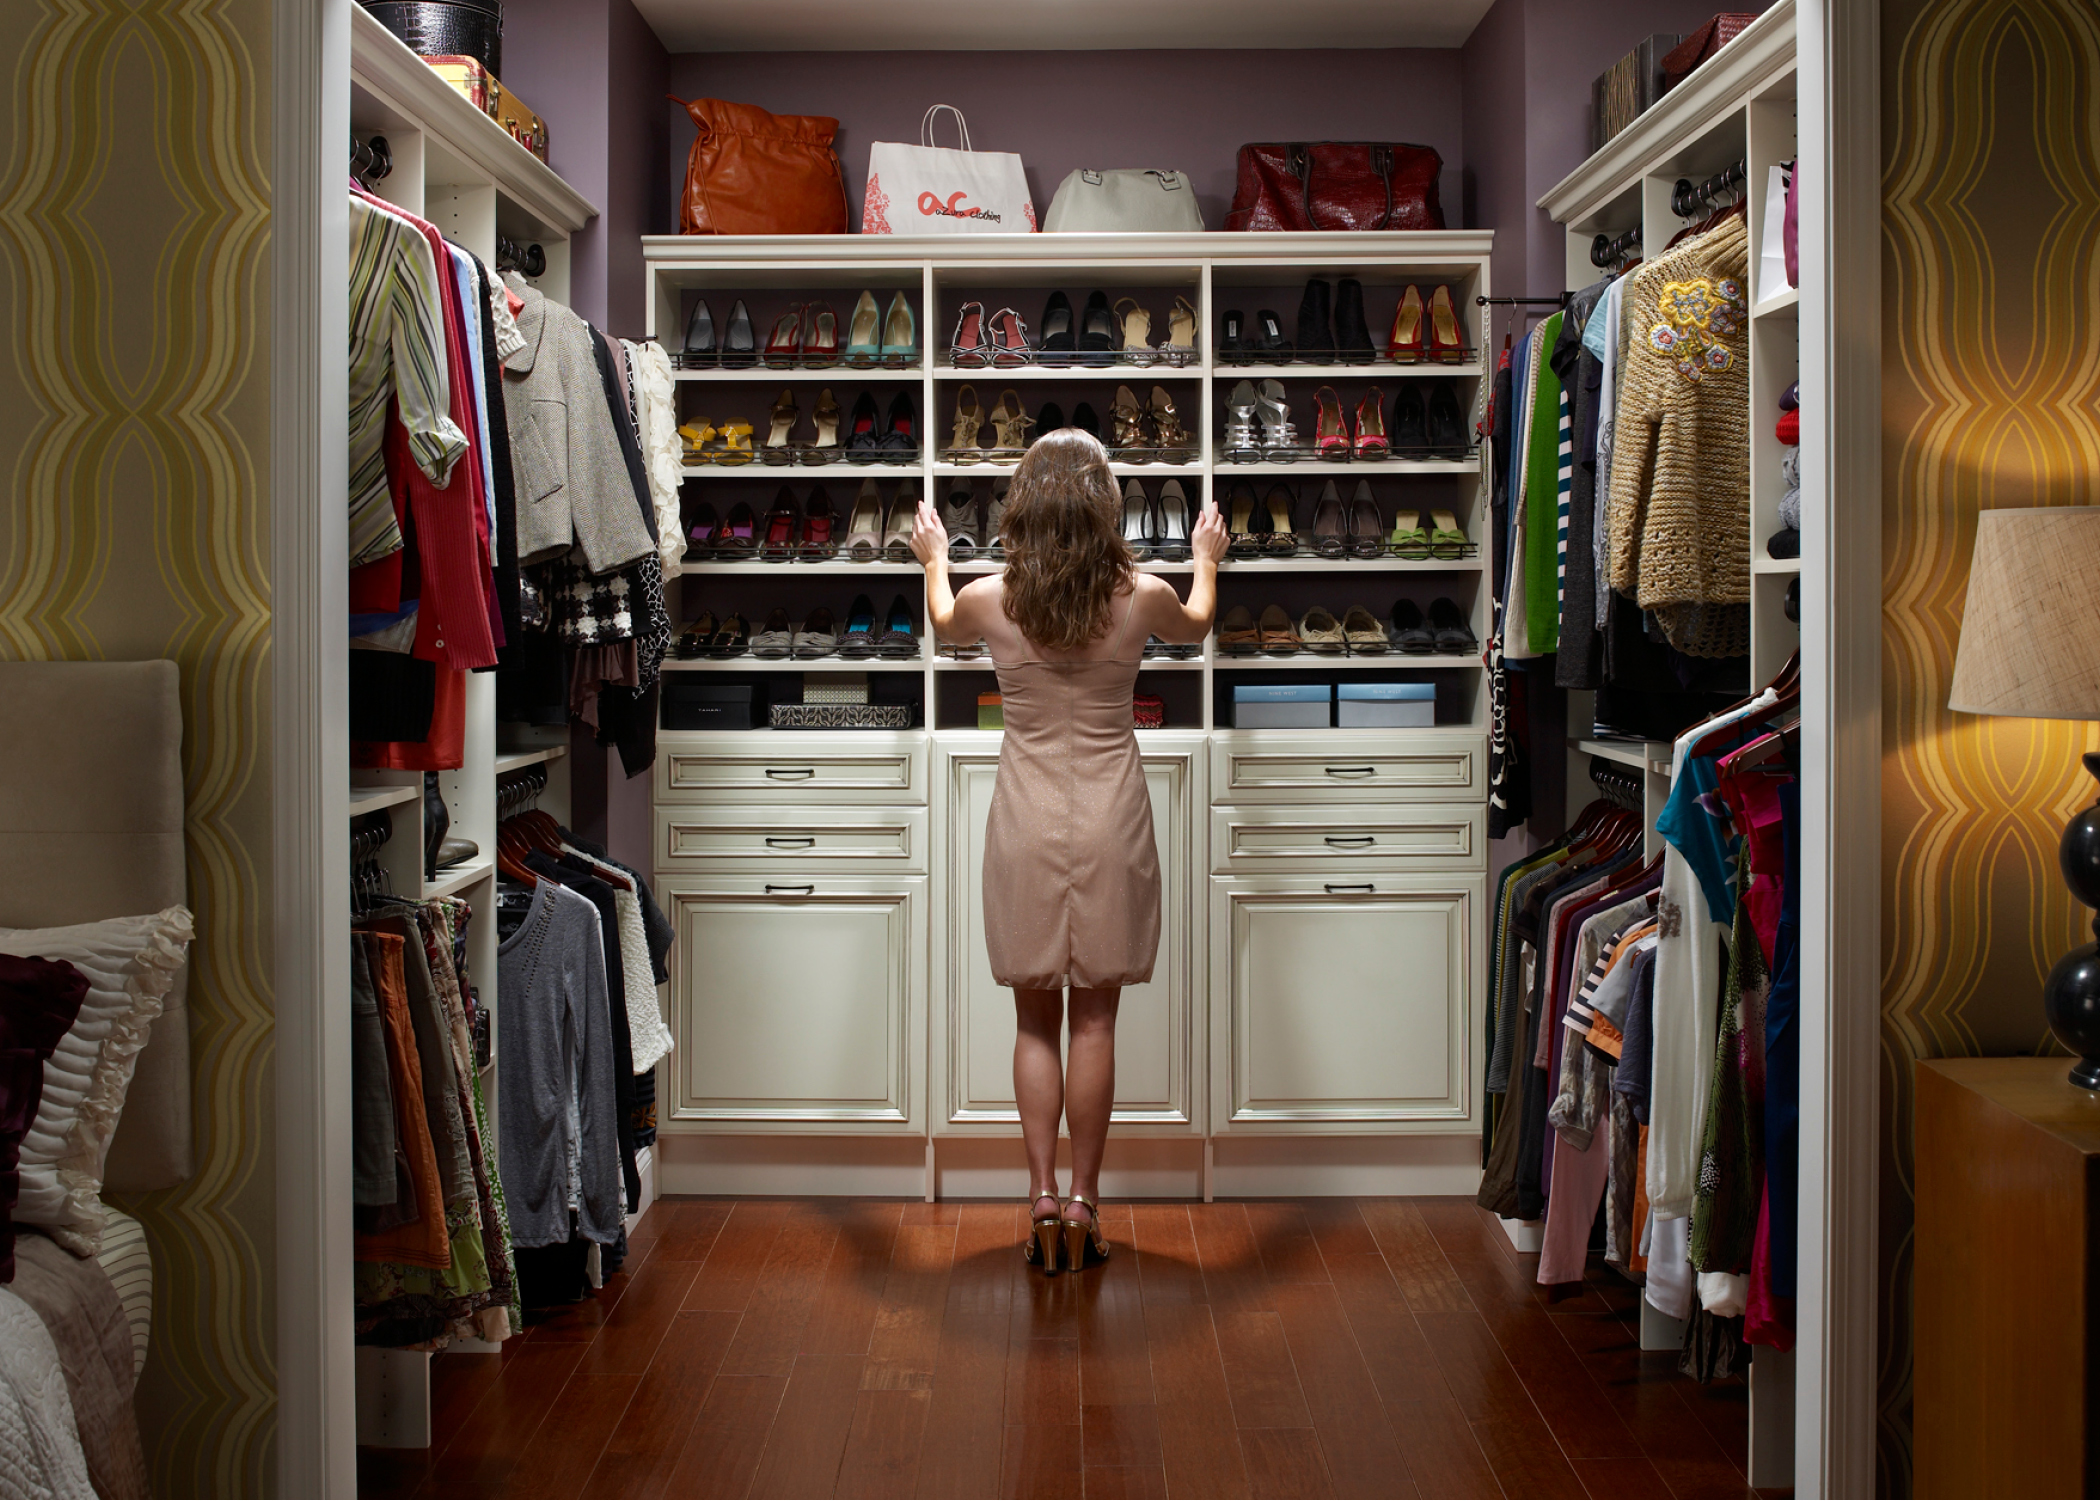 custom closets designs.  Designs Custom WalkIn Closets Inside Designs E